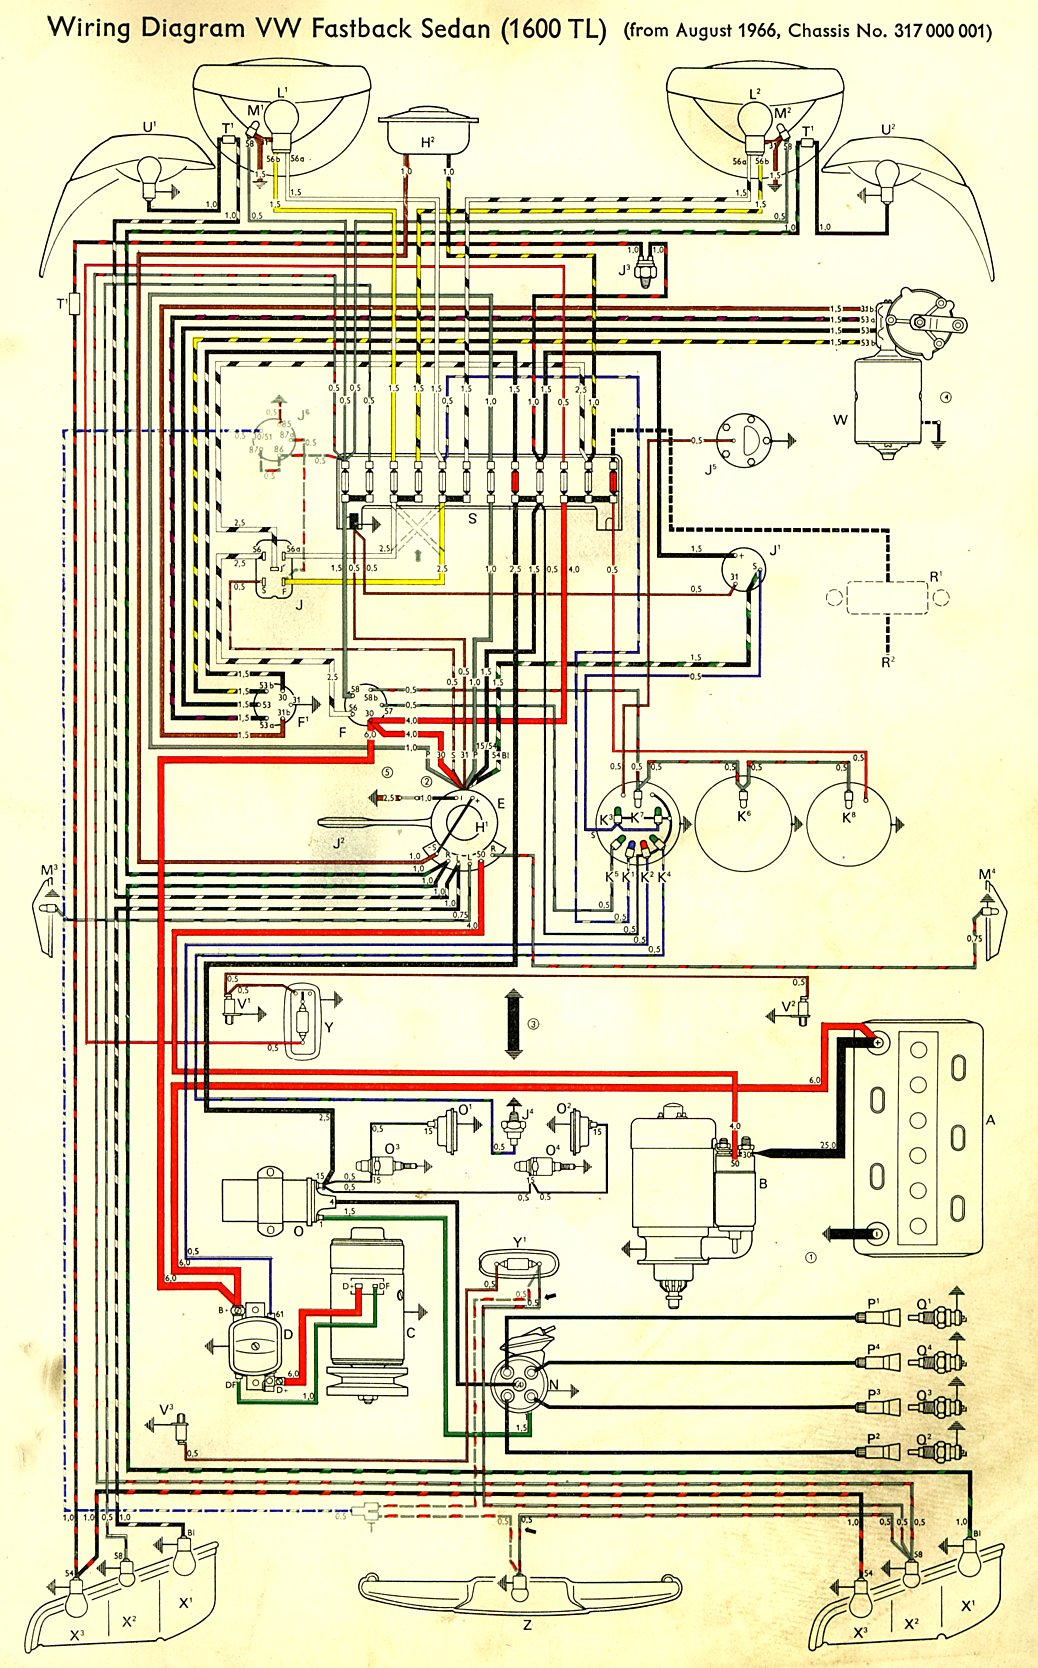 alternator diagram wiring of car alarm system 1968 vw 72 beetle diagram72